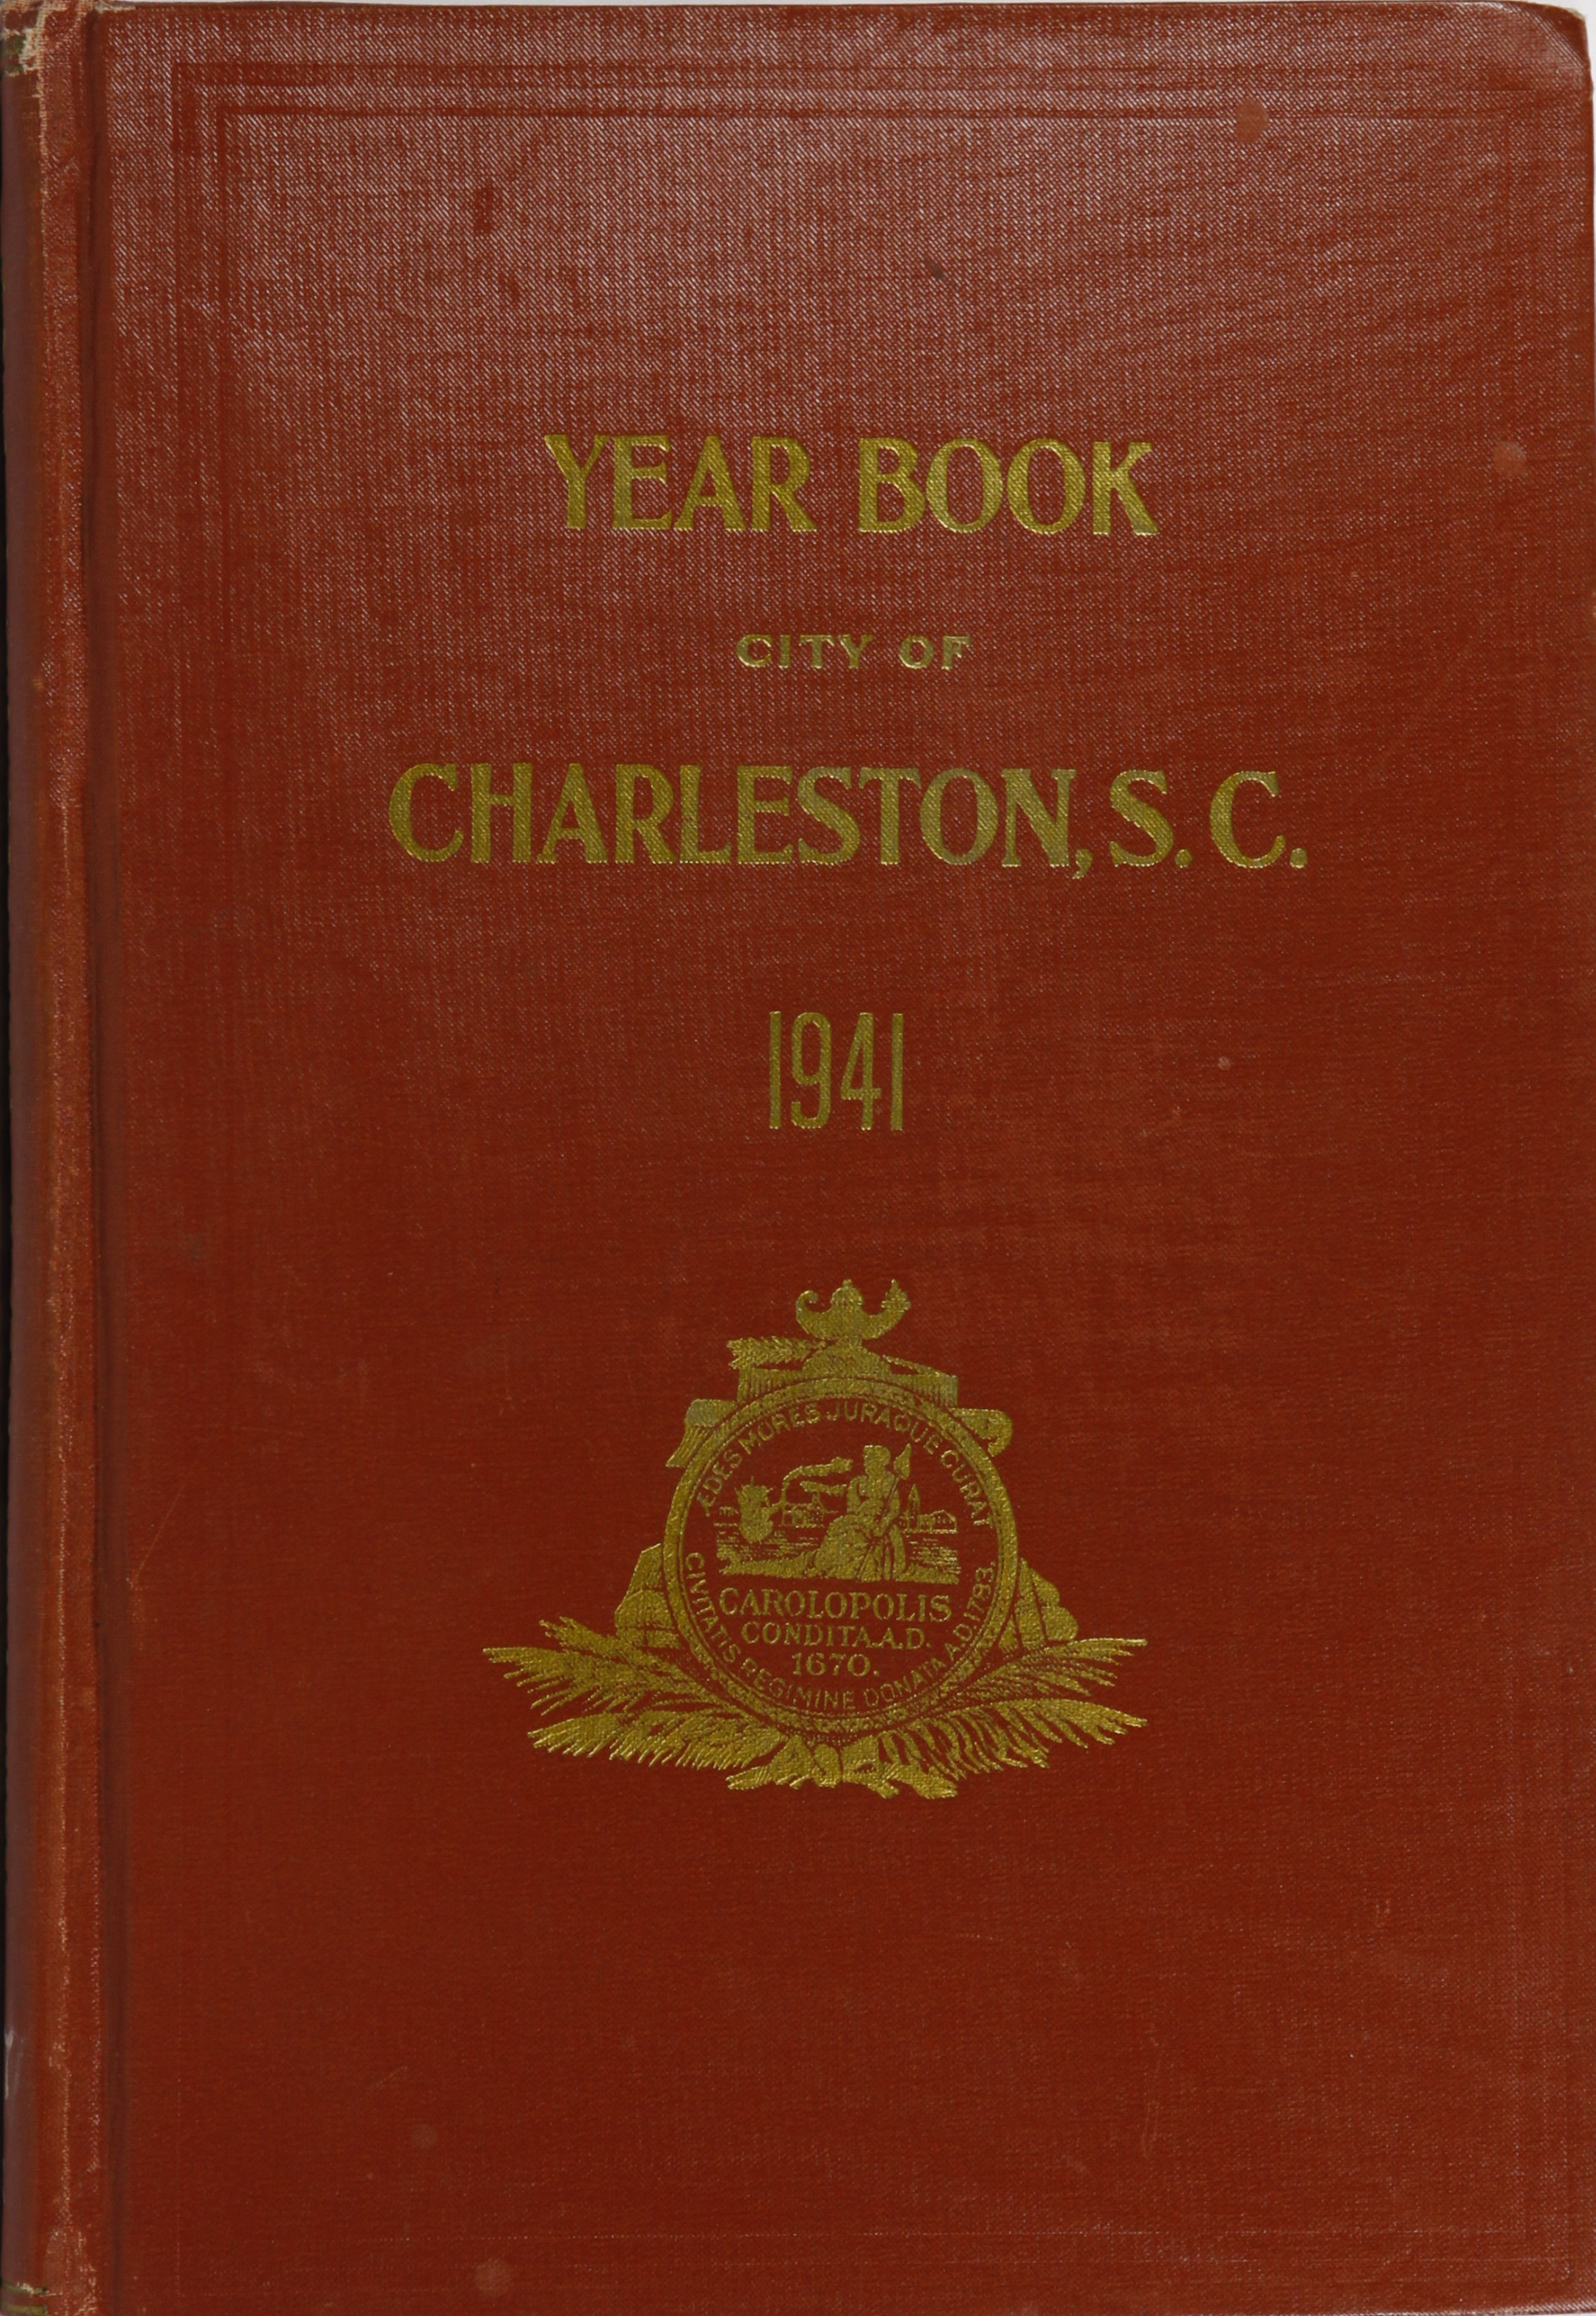 Charleston Yearbook, 1941